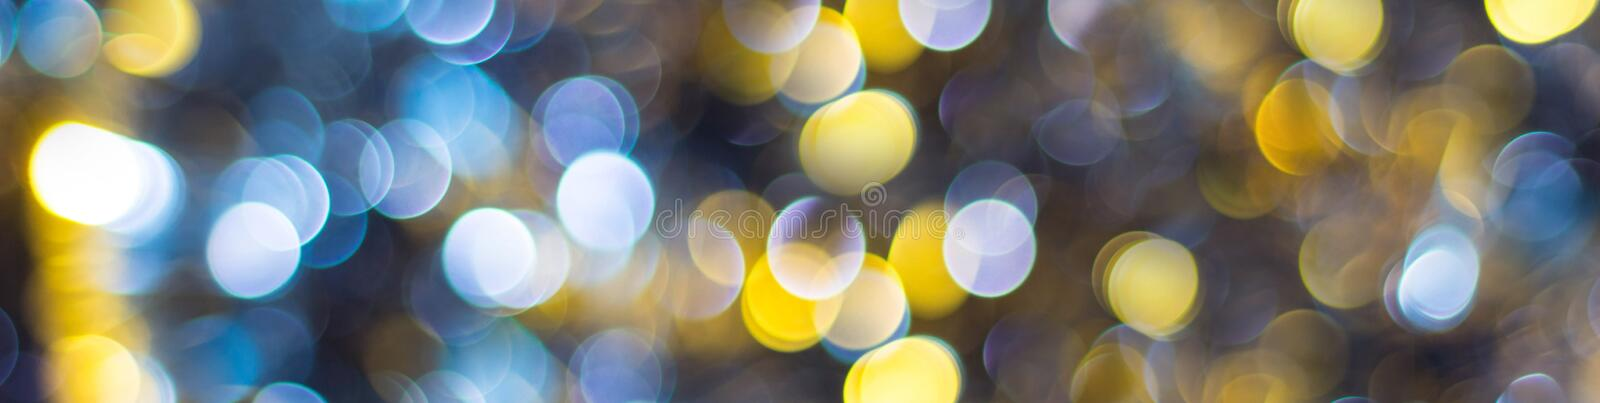 banner of Blue Yellow White bokeh. Christmas background texture royalty free stock photography